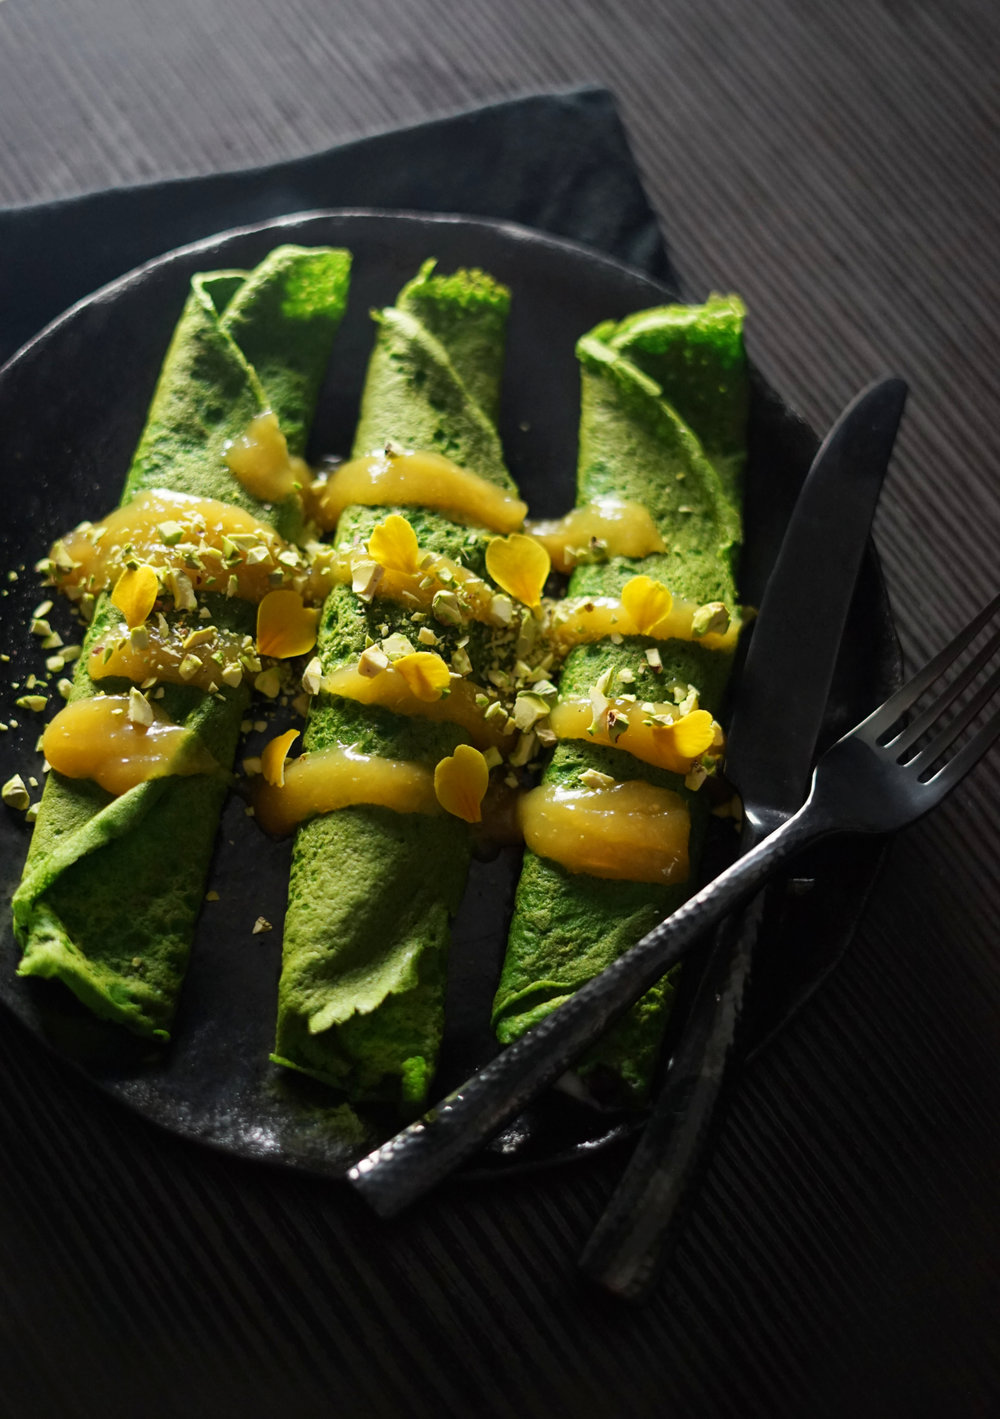 spinachcrepes5small.jpg